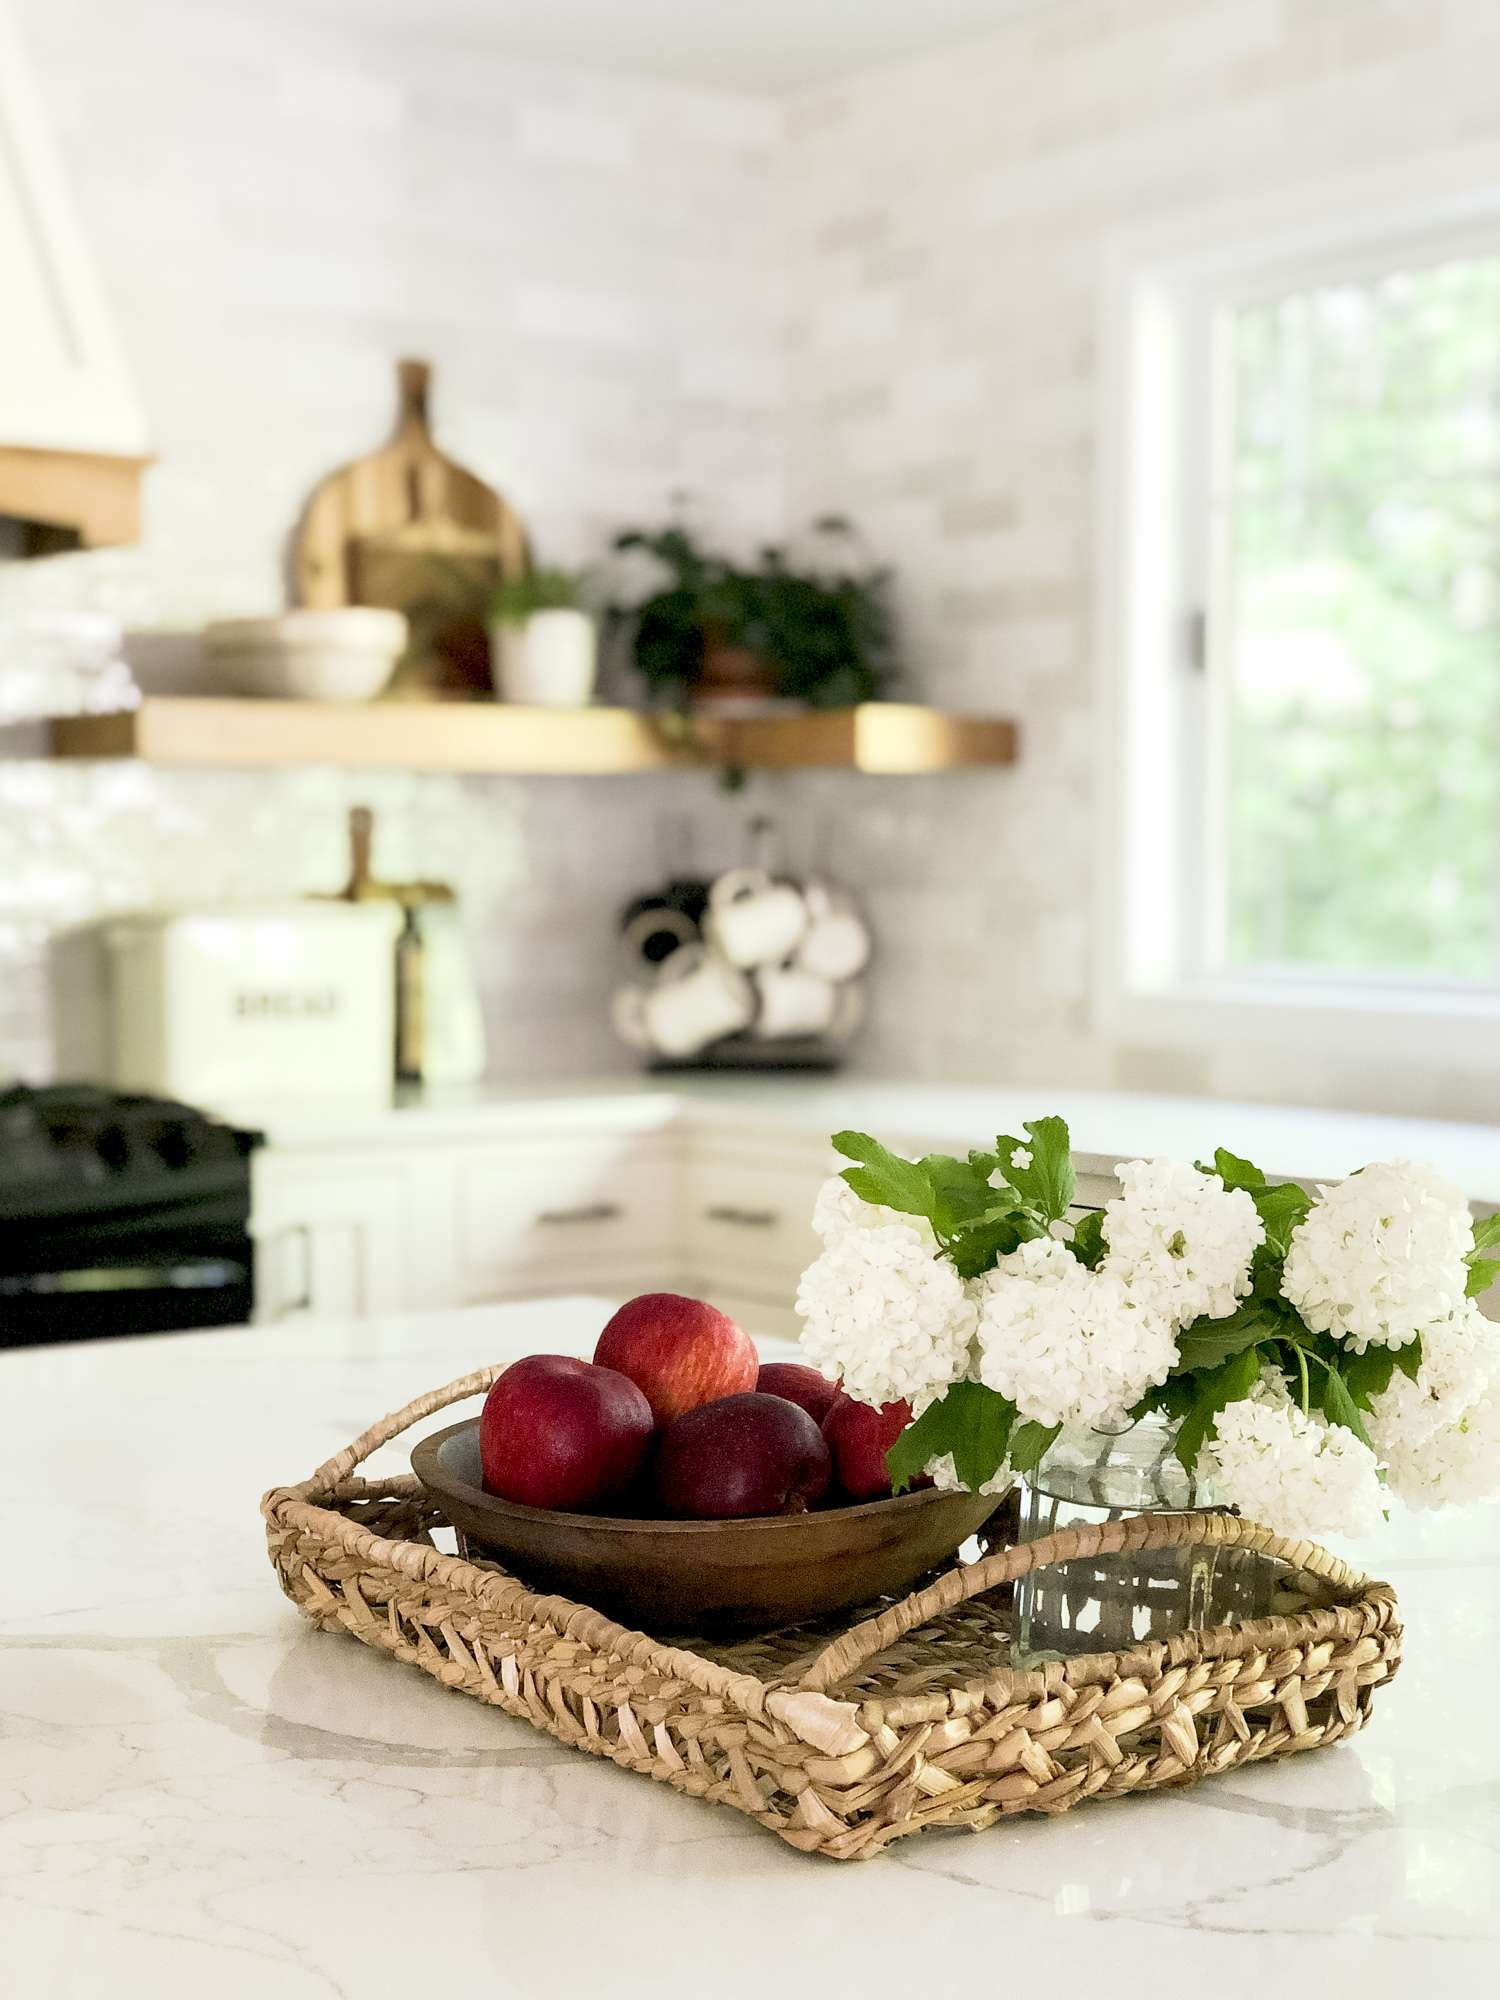 Do you want to spruce up your summer kitchen with simple and fresh decor this season? Join me for three easy additions to your summer kitchen decor. #fromhousetohaven #summerkitchen #kitchendecor #summerdecor